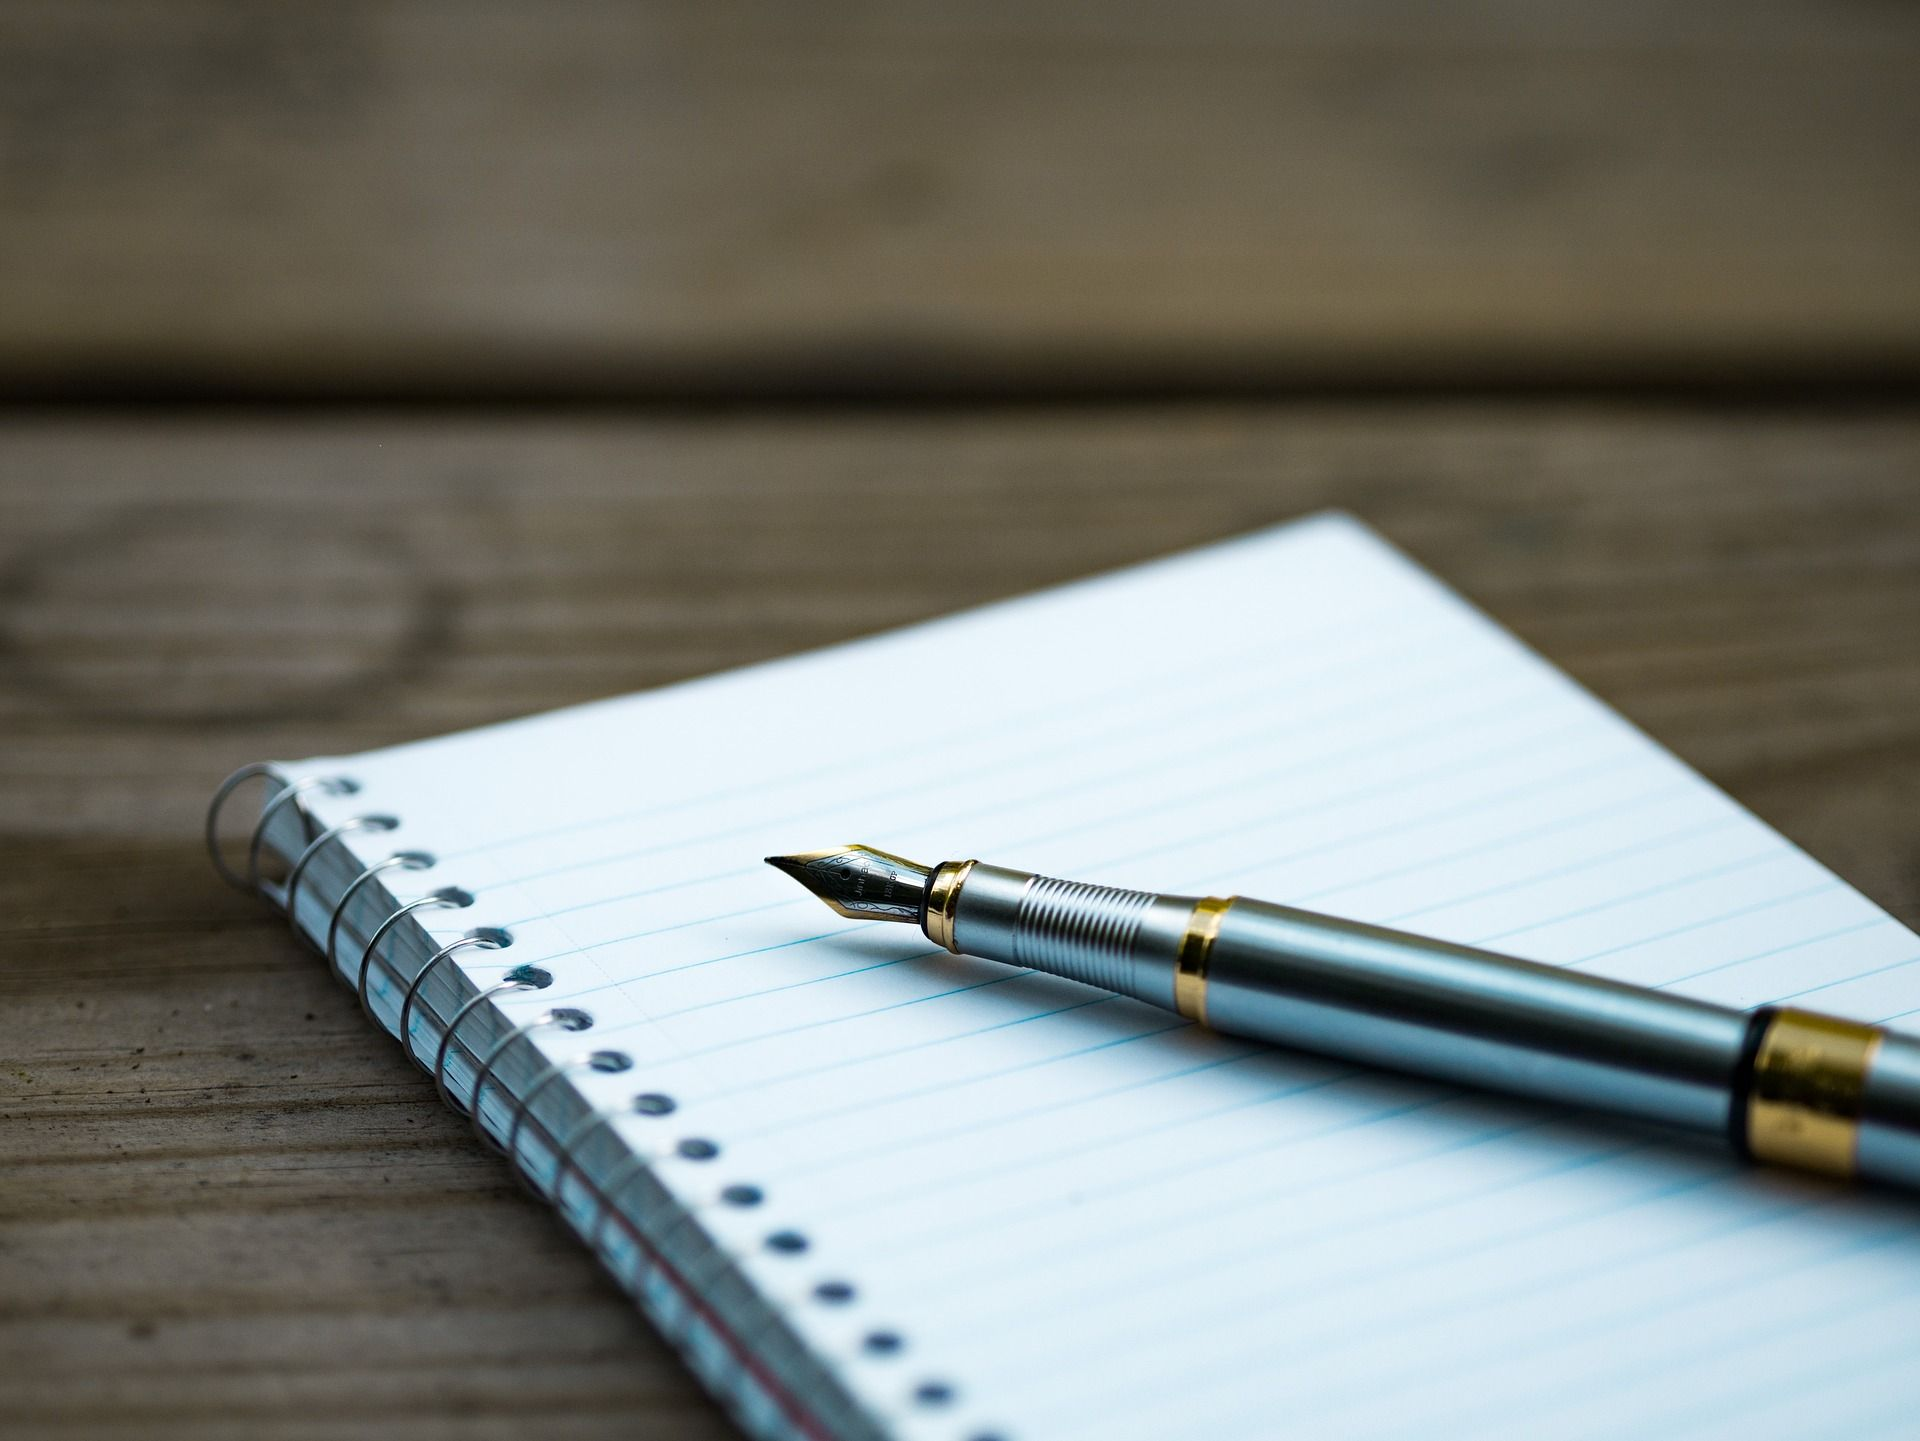 Introduction to Argument Writing